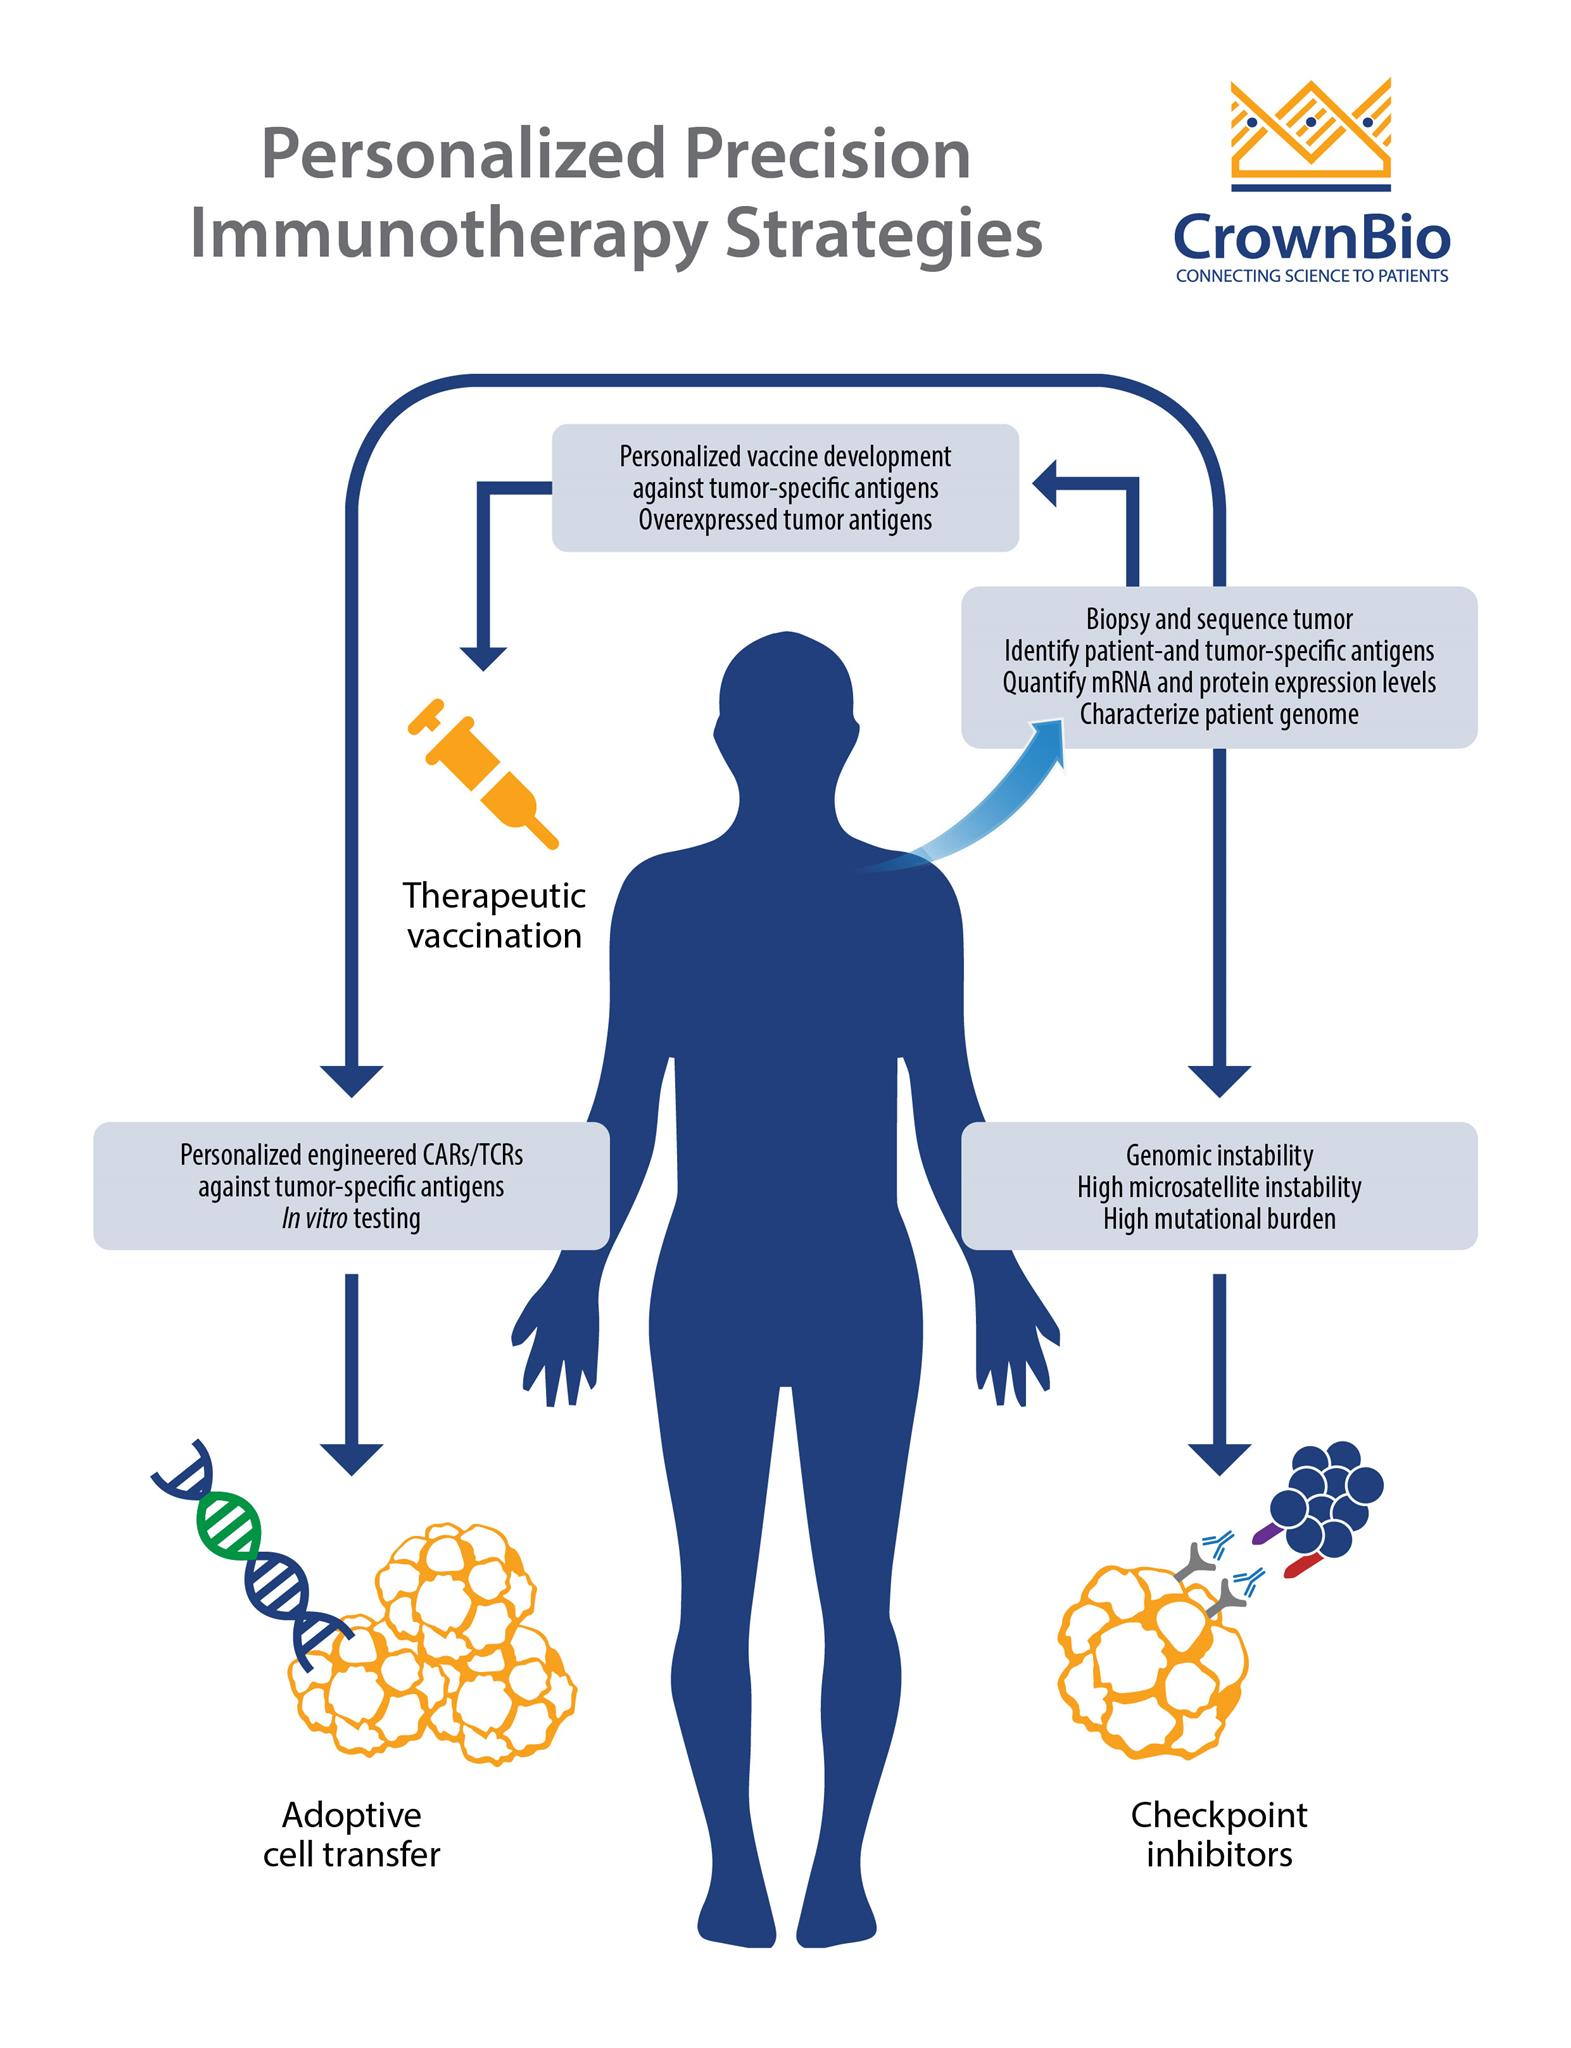 Personalized Cancer Immunotherapy